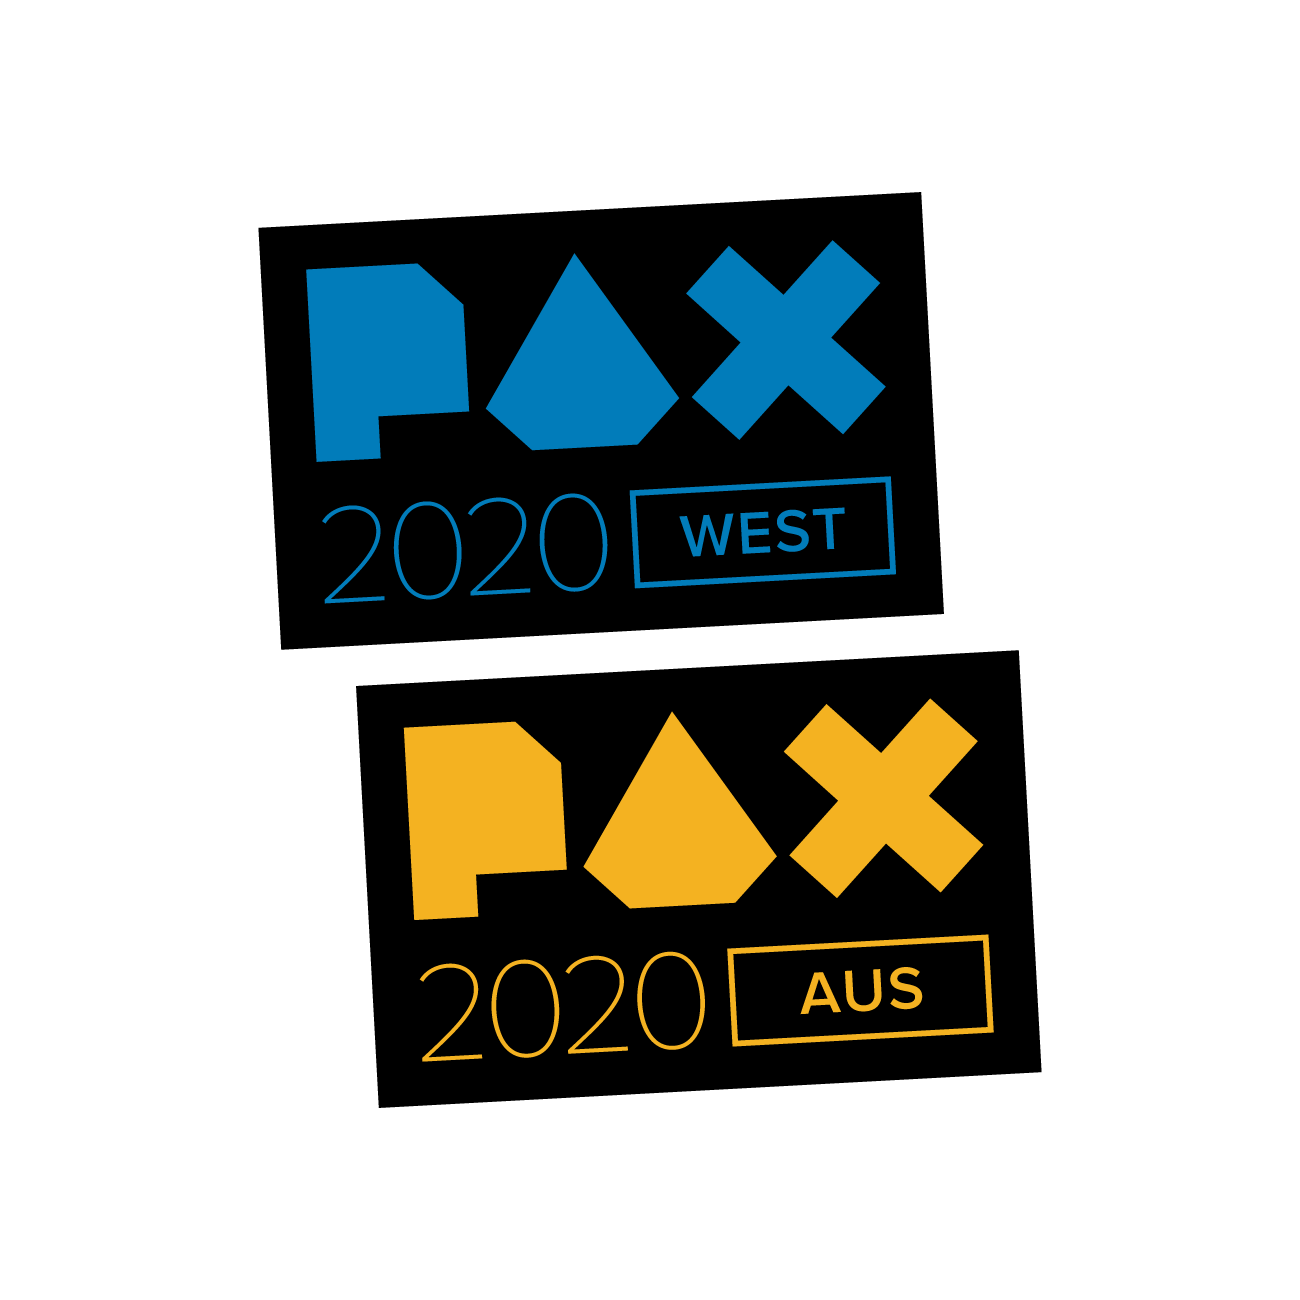 PAX West & Aus 2020 Patch - Free with $35 PAX West Purchase